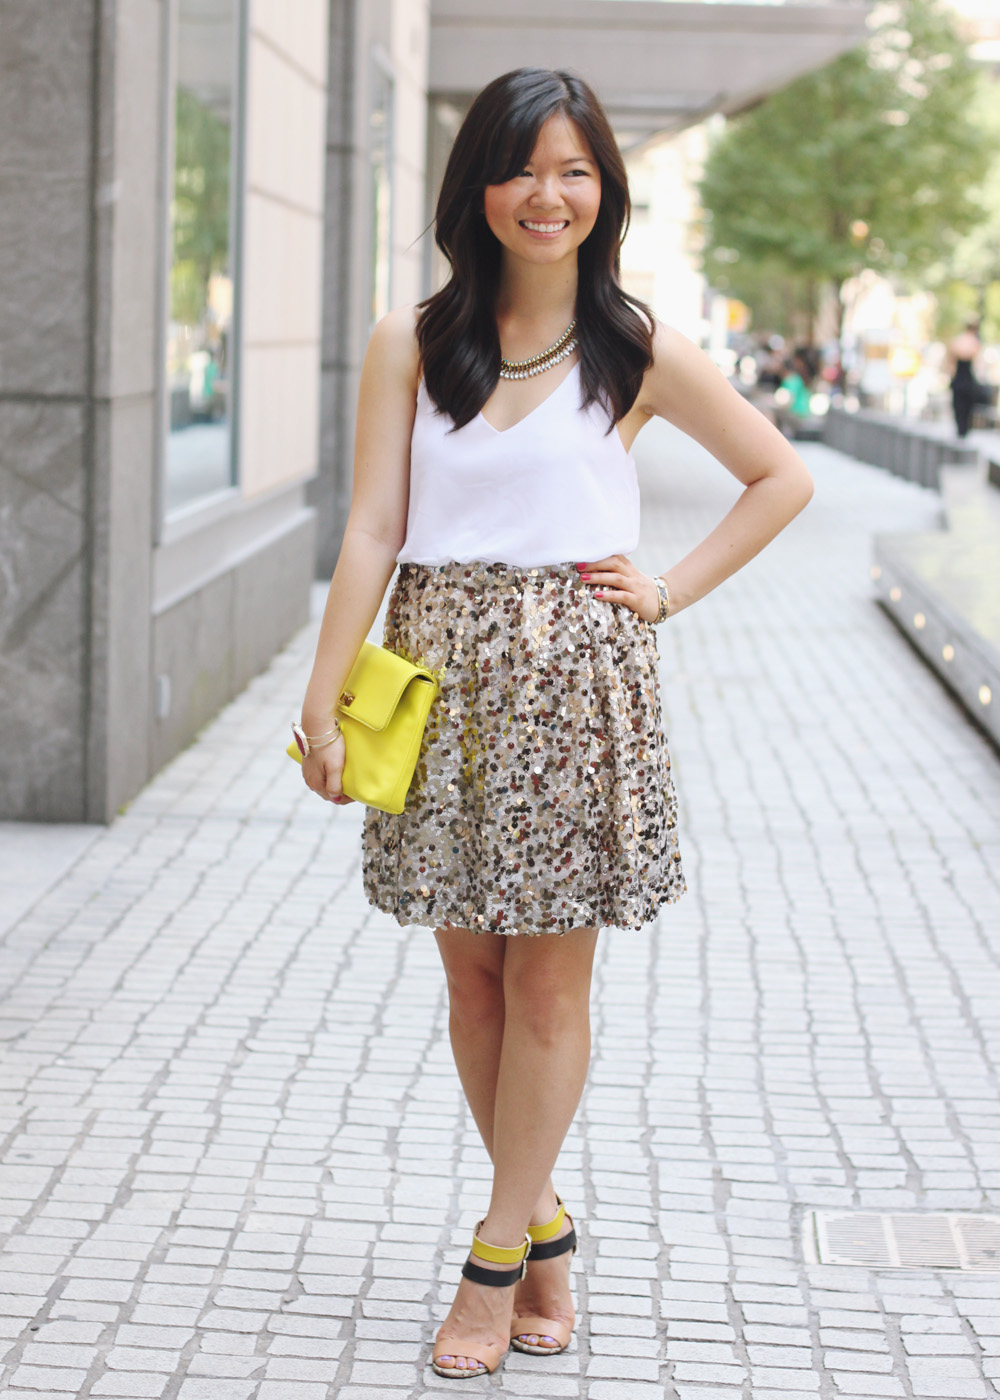 a5f62dd7d146 summer sequins. Skirt The Rules Blog; NYC fashion blogger; style blog;  summer outfit photo;